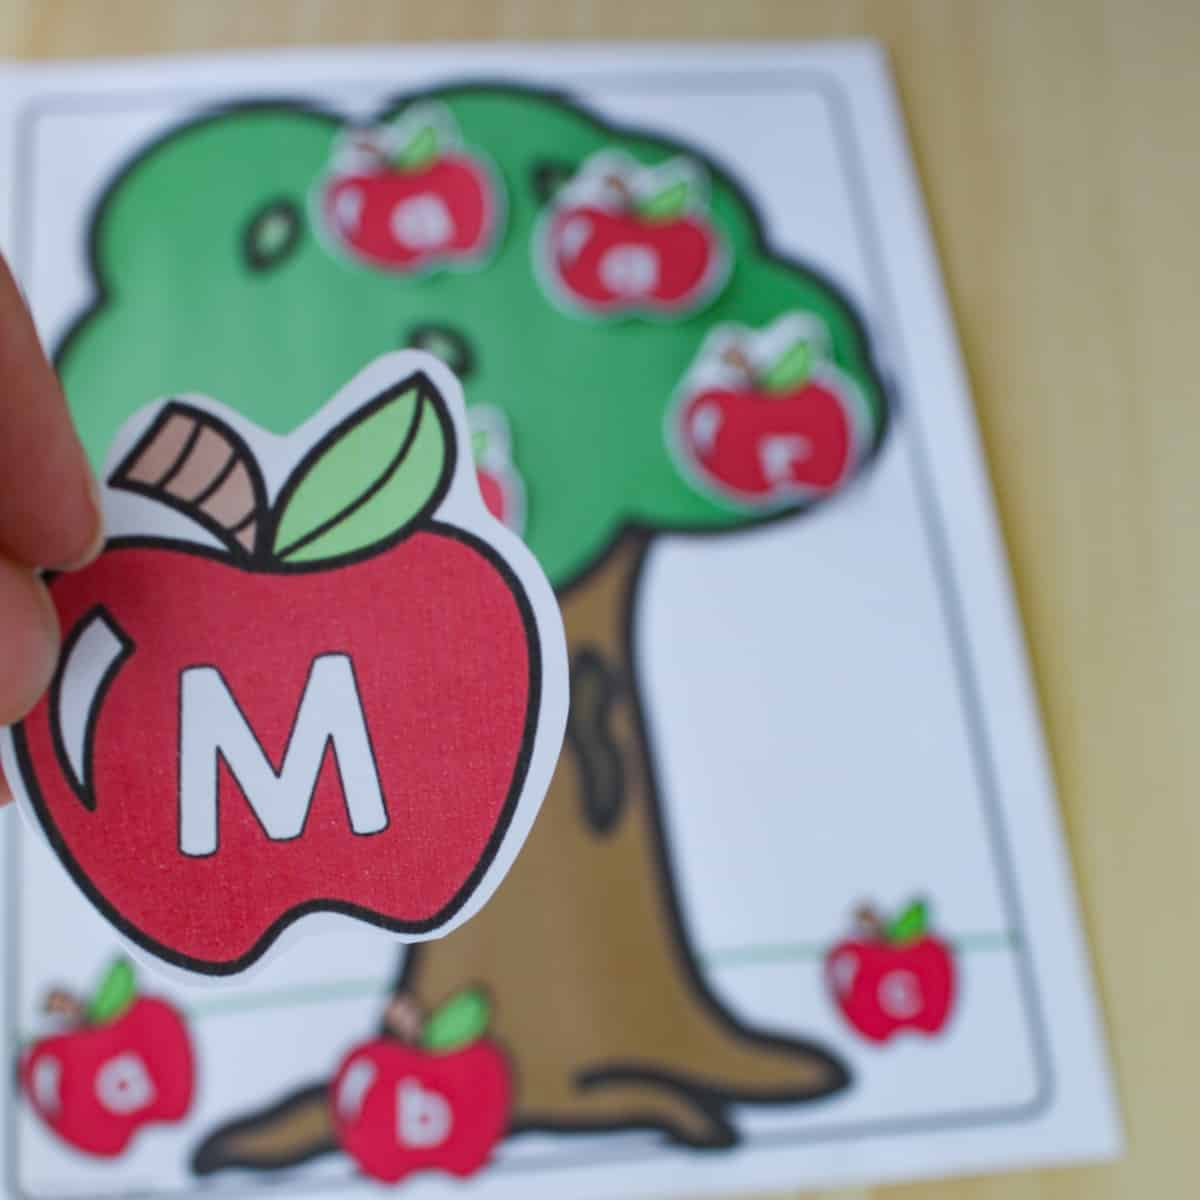 closeup of an apple letter with an apple tree name printable blurred in the background